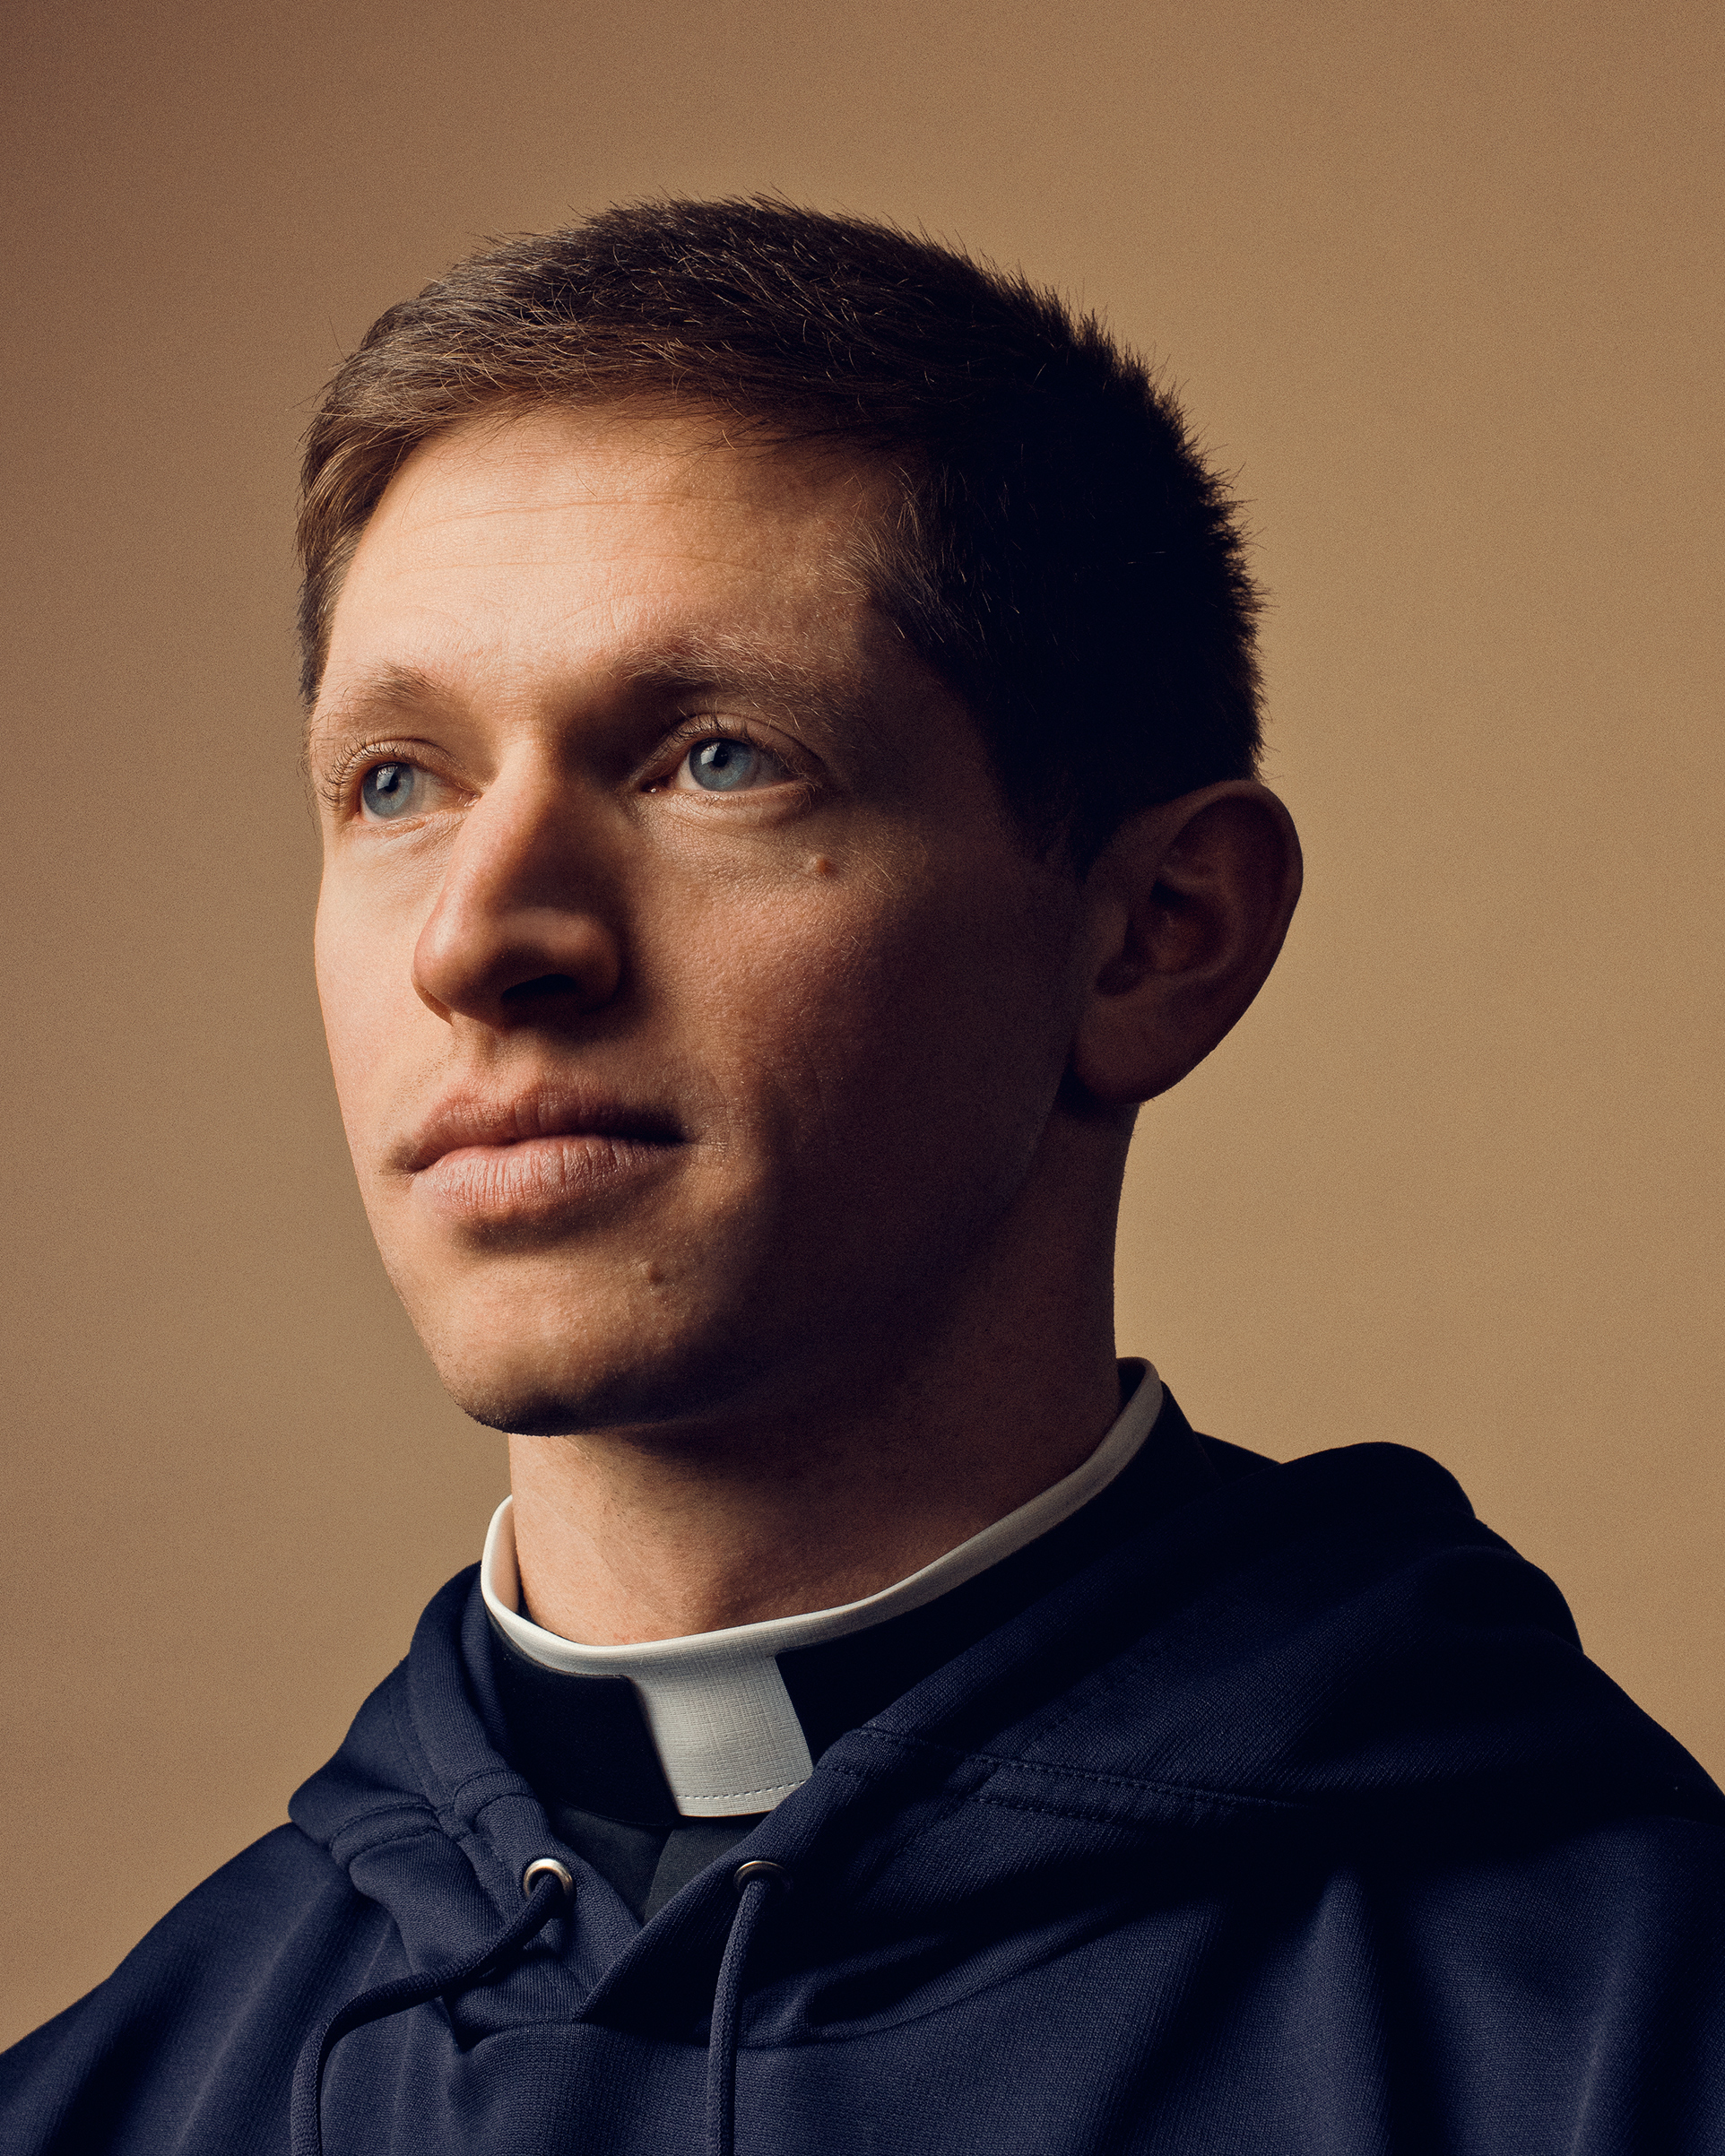 Parochial vicar of Our Lady of Mercy Church in Potomac, Md., Father Chris Seith, 28, admires the simple life that Pope Francis praises